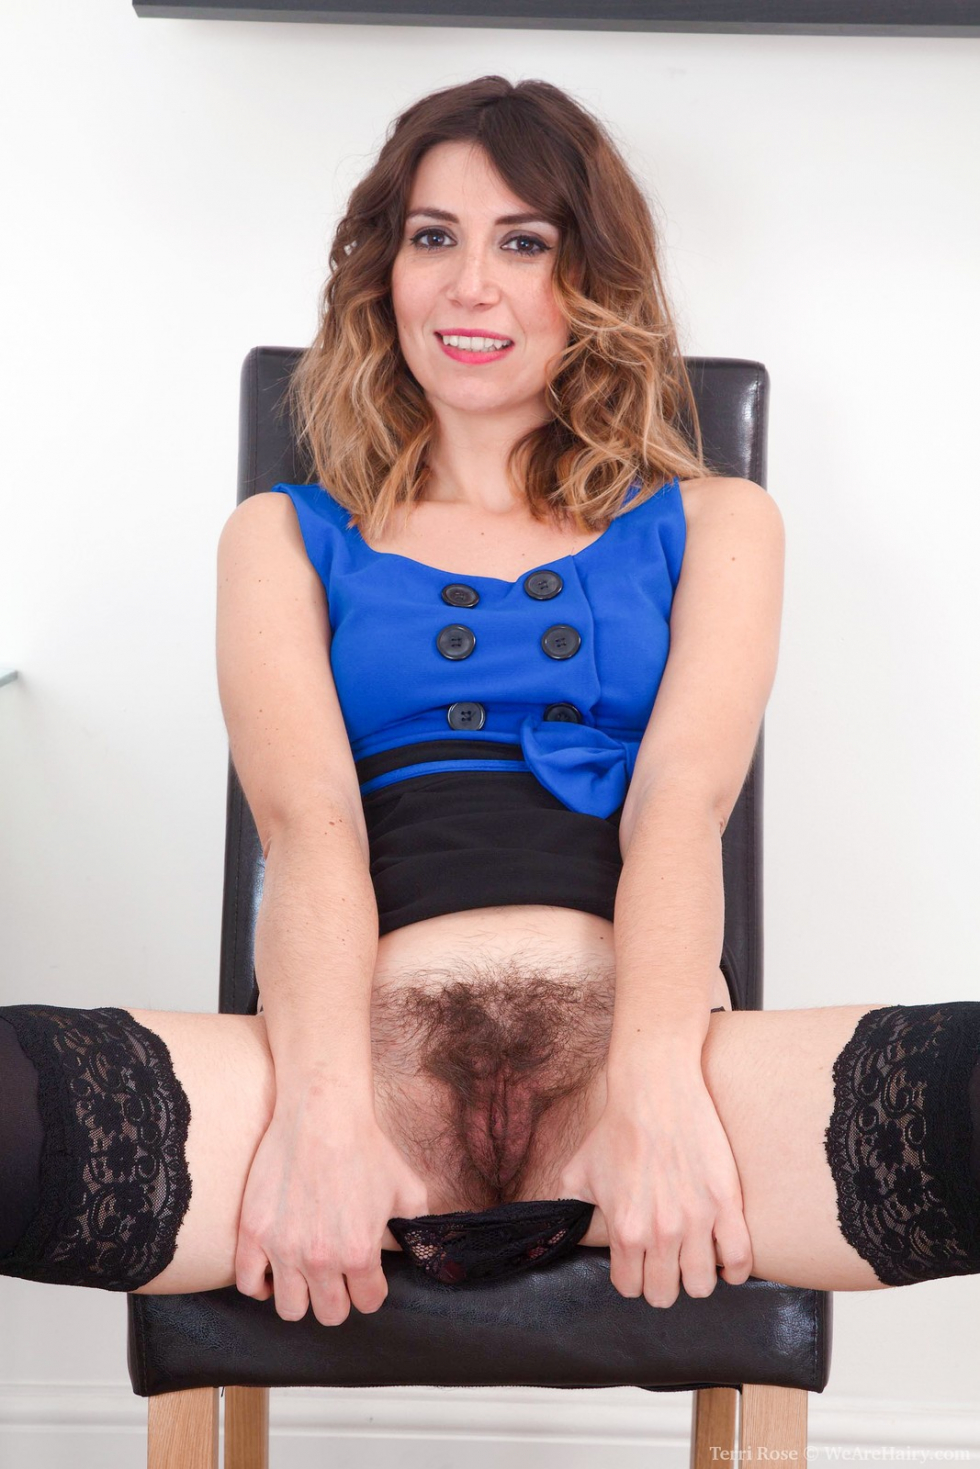 She sits on chair and toys pussy till she cums 9